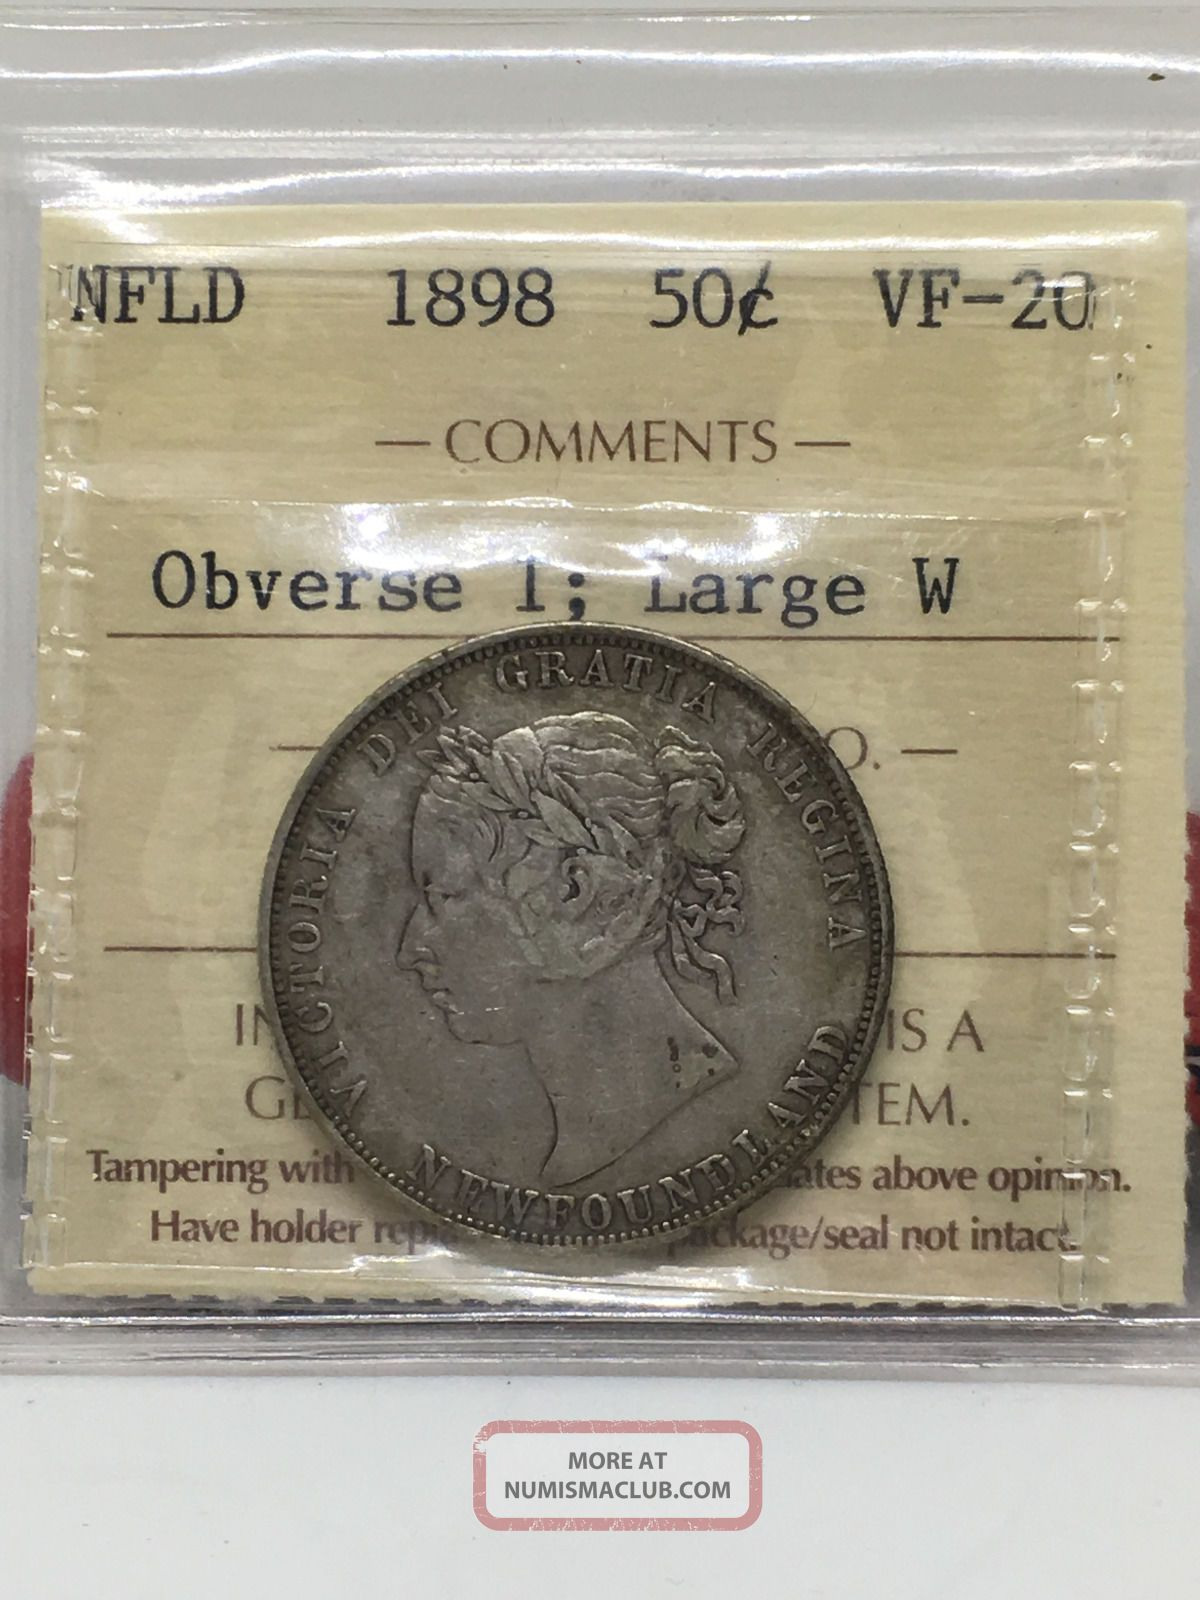 Nfld 1898 50 Cent Piece.  Iccs Vf - 20 Coins: Canada photo